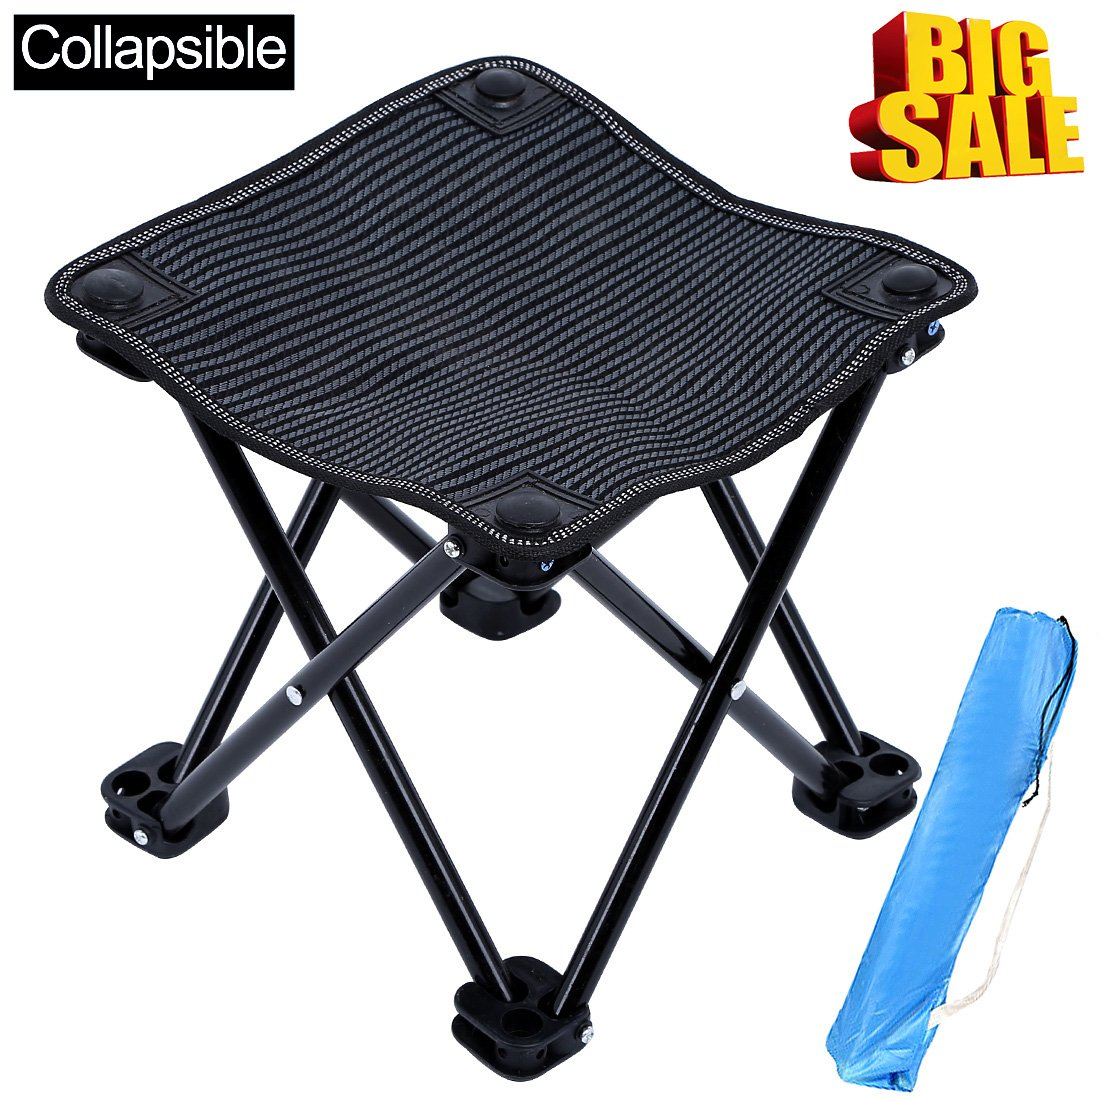 KAIYANG Mini Portable Camp Stool Folding Stool Chair Outdoor Carry Stool for Camping, Hiking, Fishing, Beach, Park with Carry Bag (Black)